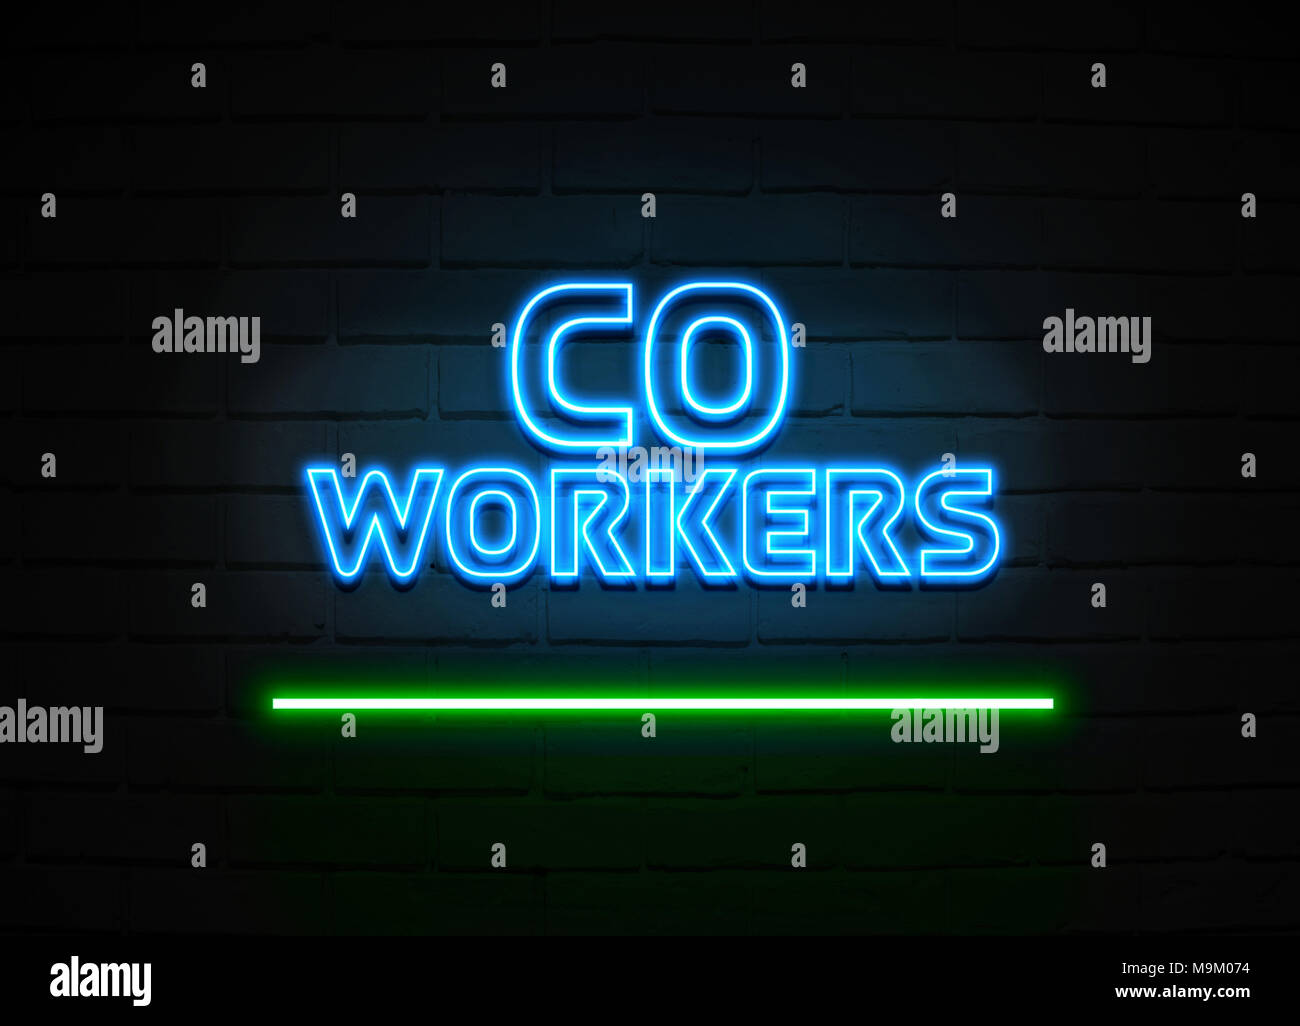 Co Workers neon sign - Glowing Neon Sign on brickwall wall - 3D rendered royalty free stock illustration. - Stock Image